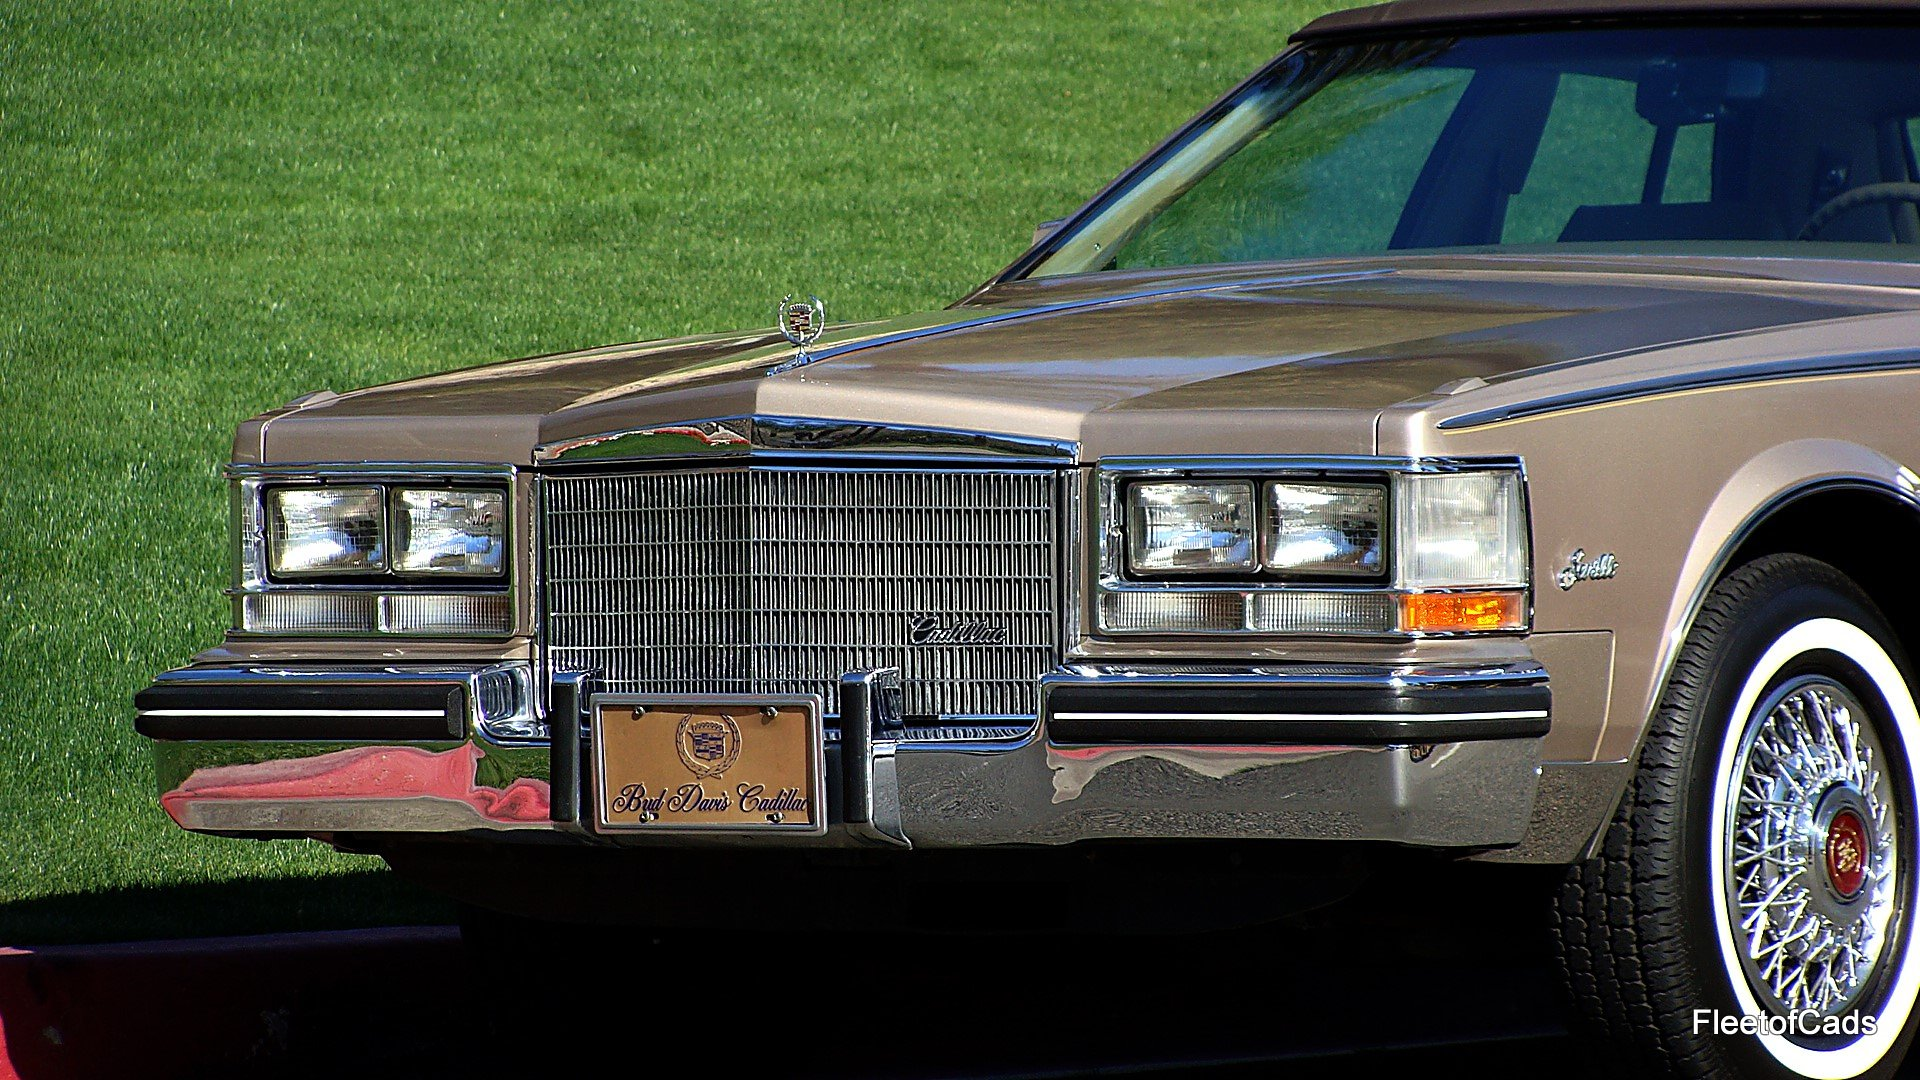 Details about 1985 cadillac seville cadillac